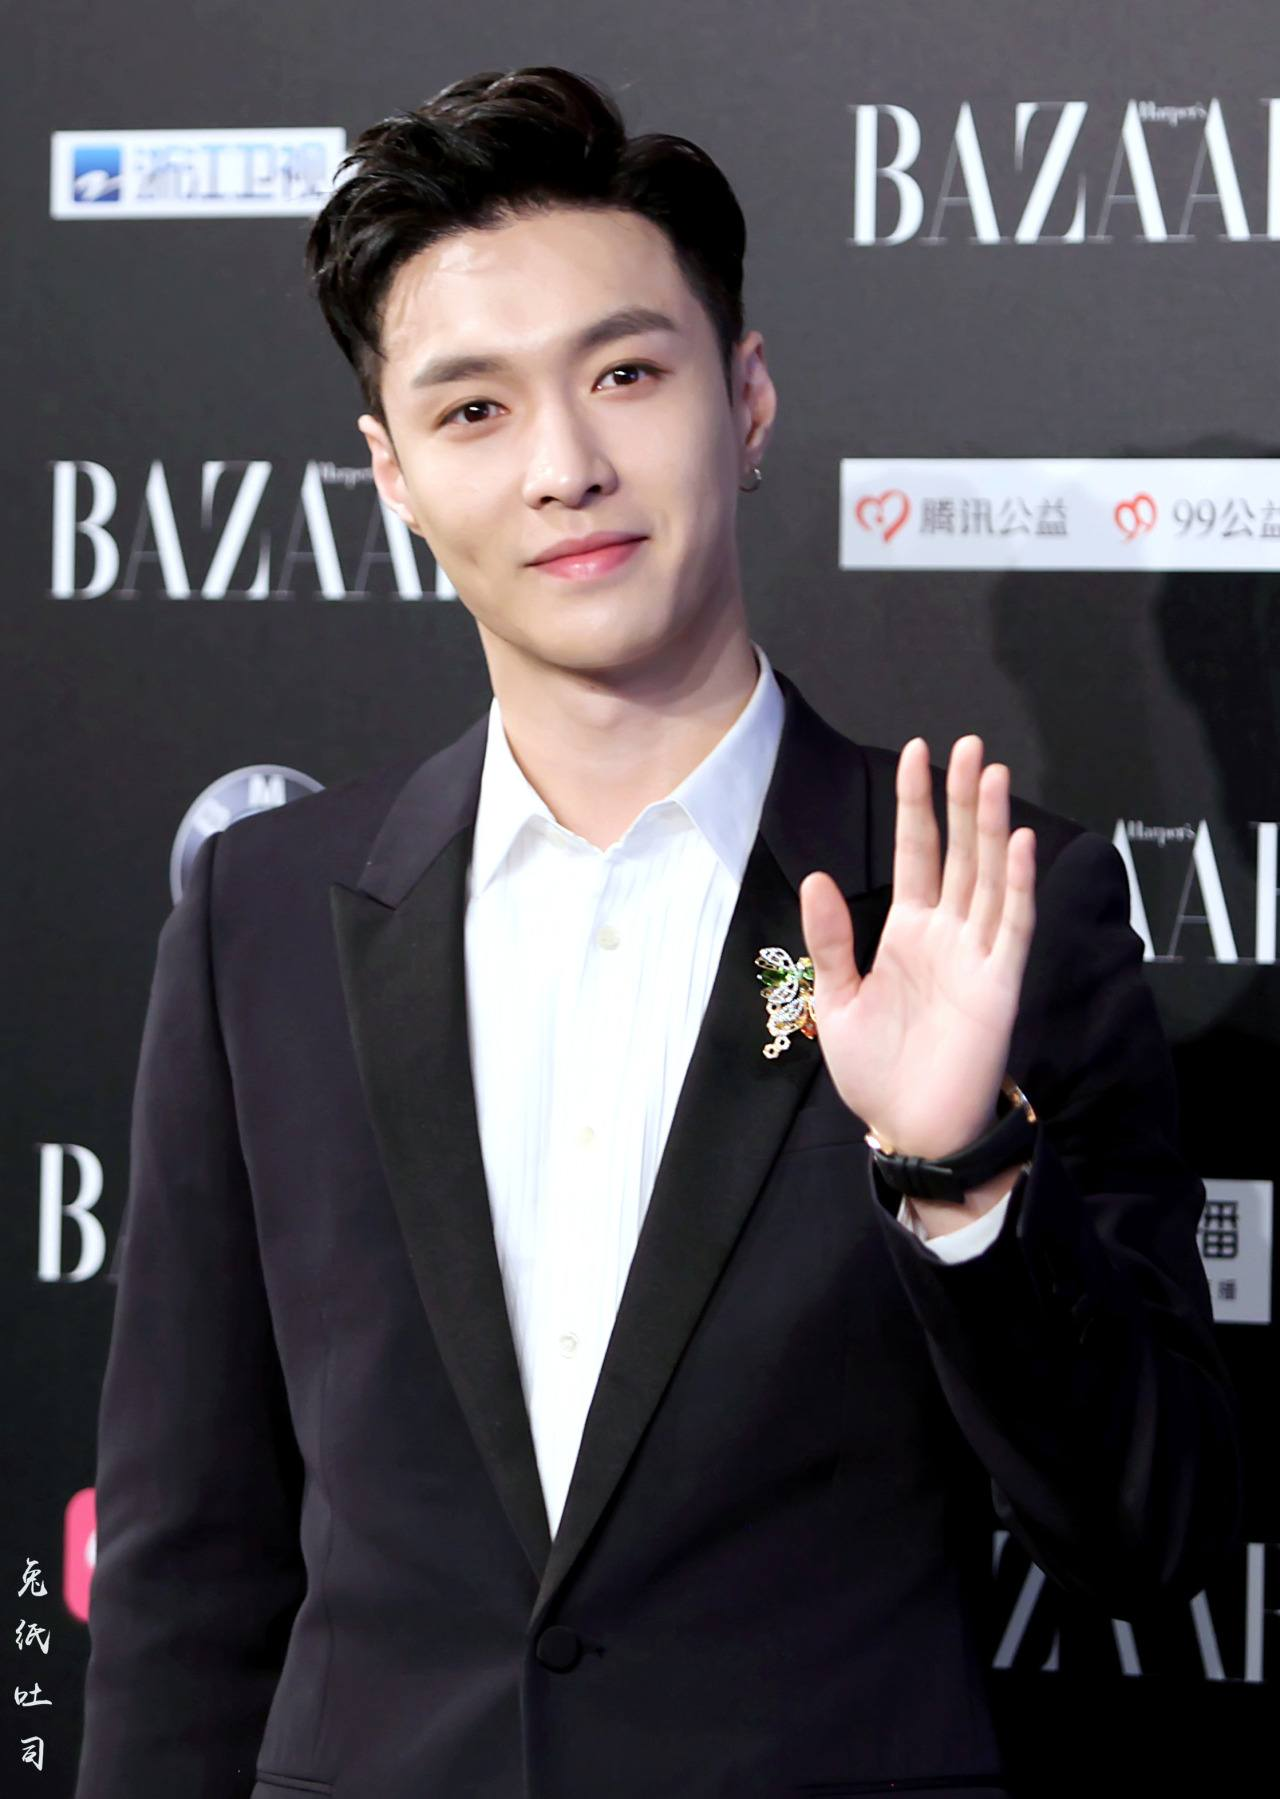 EXO's Lay smiled at fans as he posed for a picture at Harper Bazaar Event.